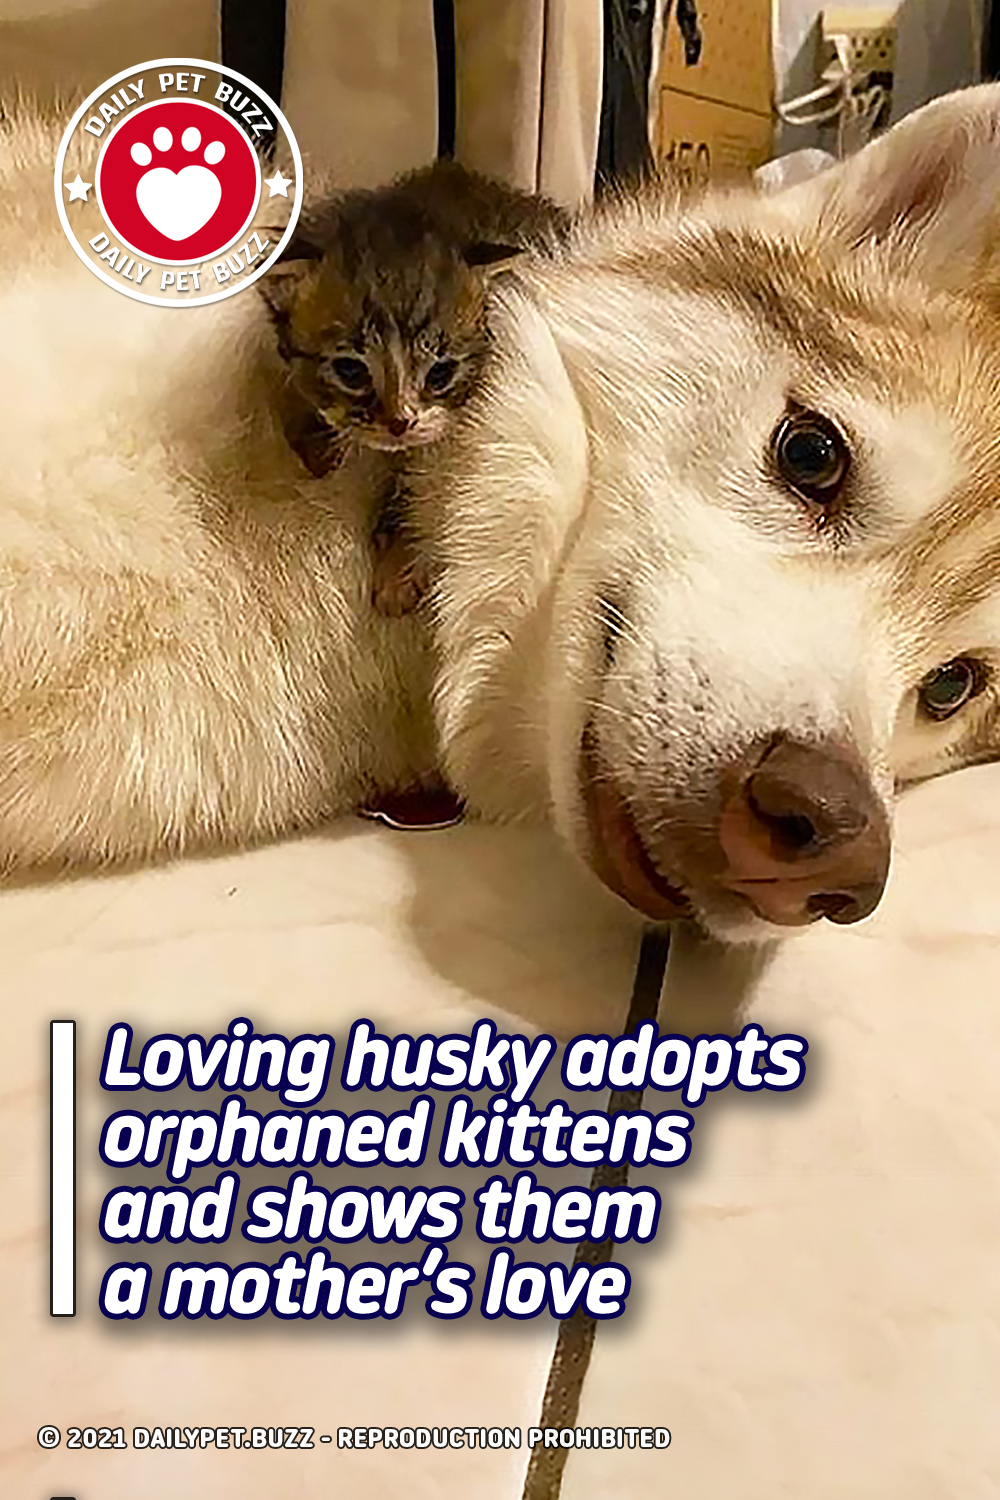 Loving husky adopts orphaned kittens and shows them a mother's love